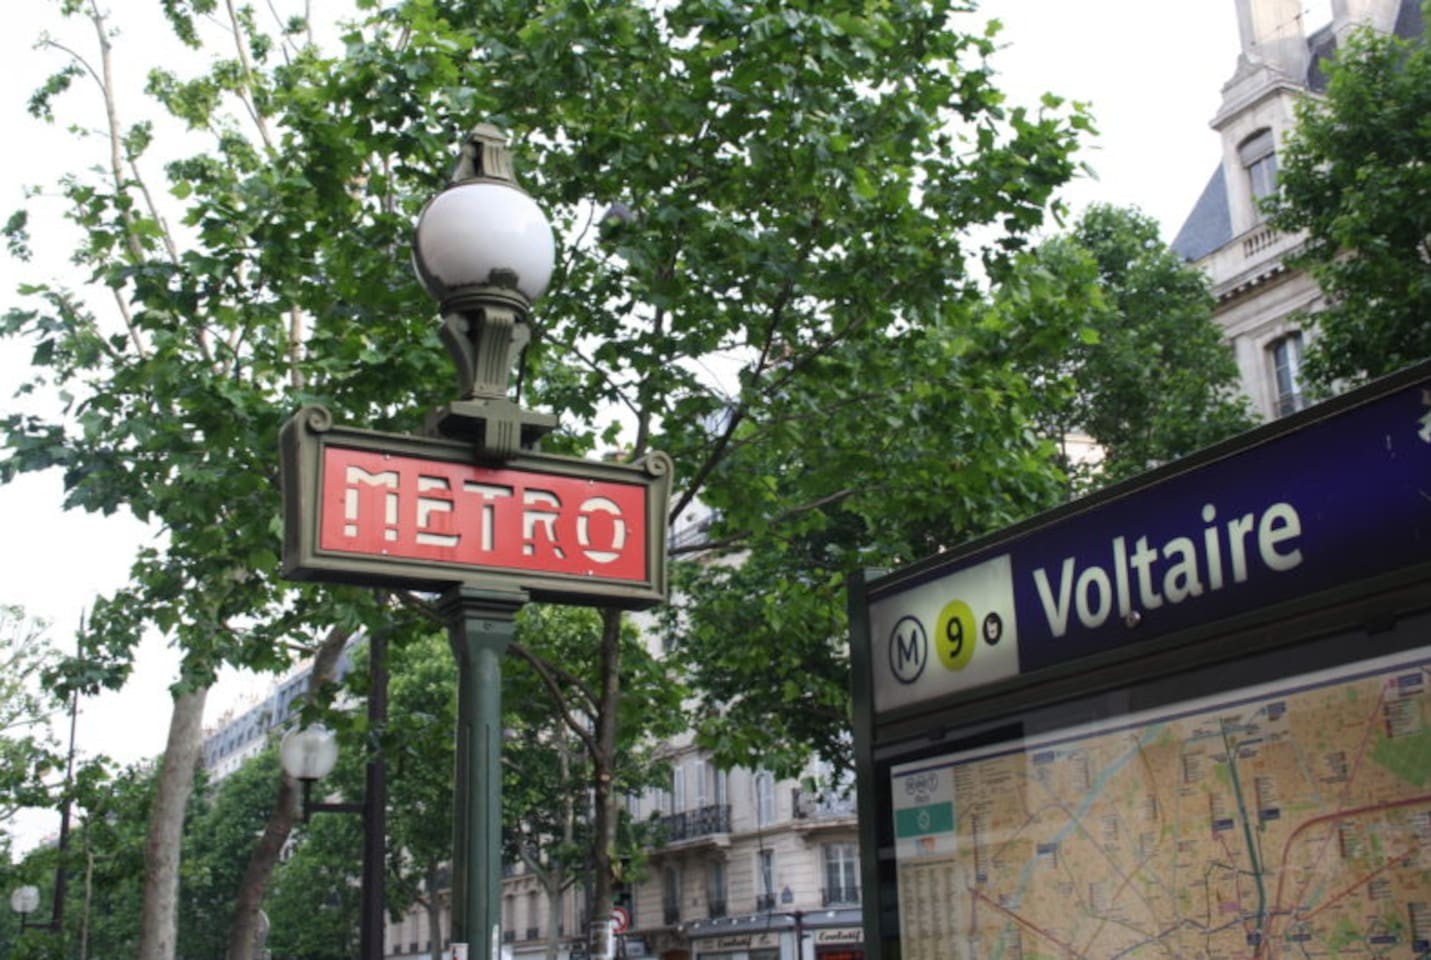 Few minutes away from Voltaire metro station, line 9